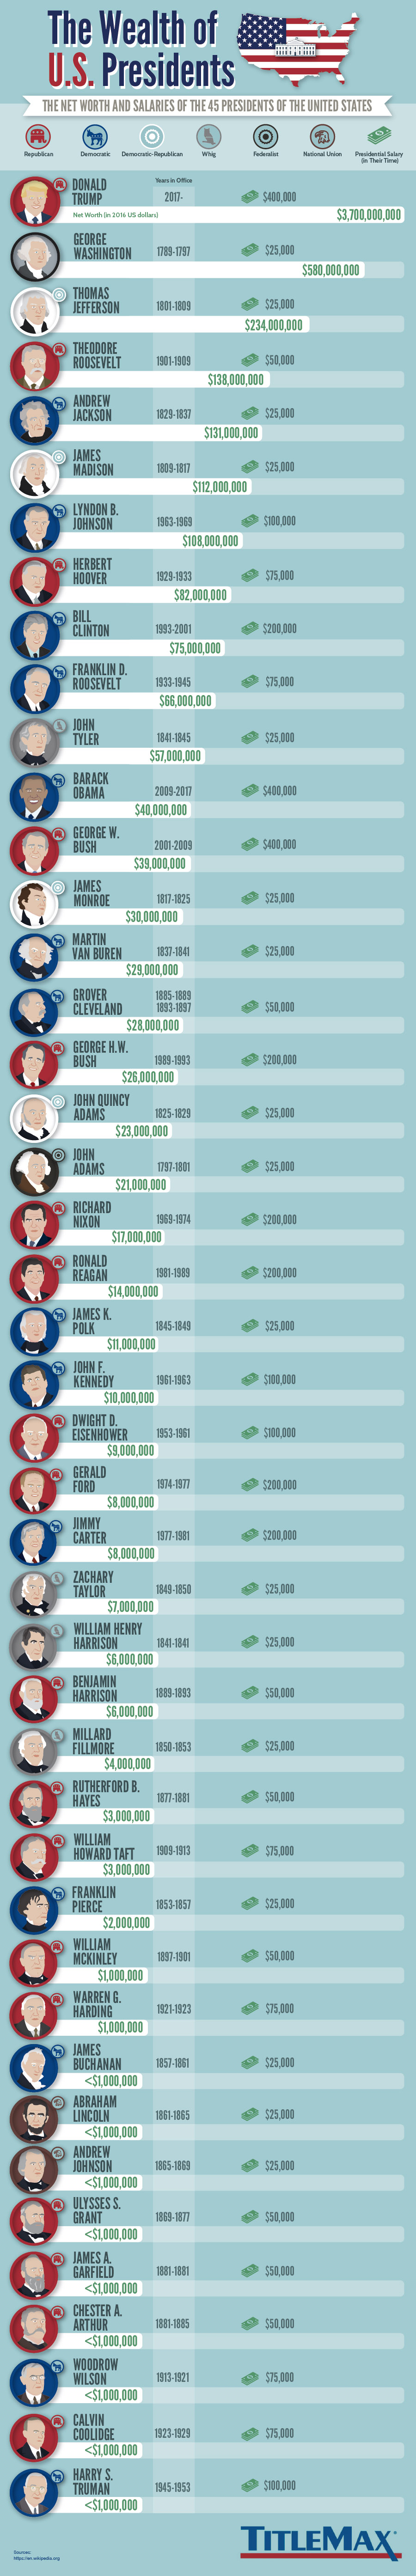 The Wealth of U.S. Presidents